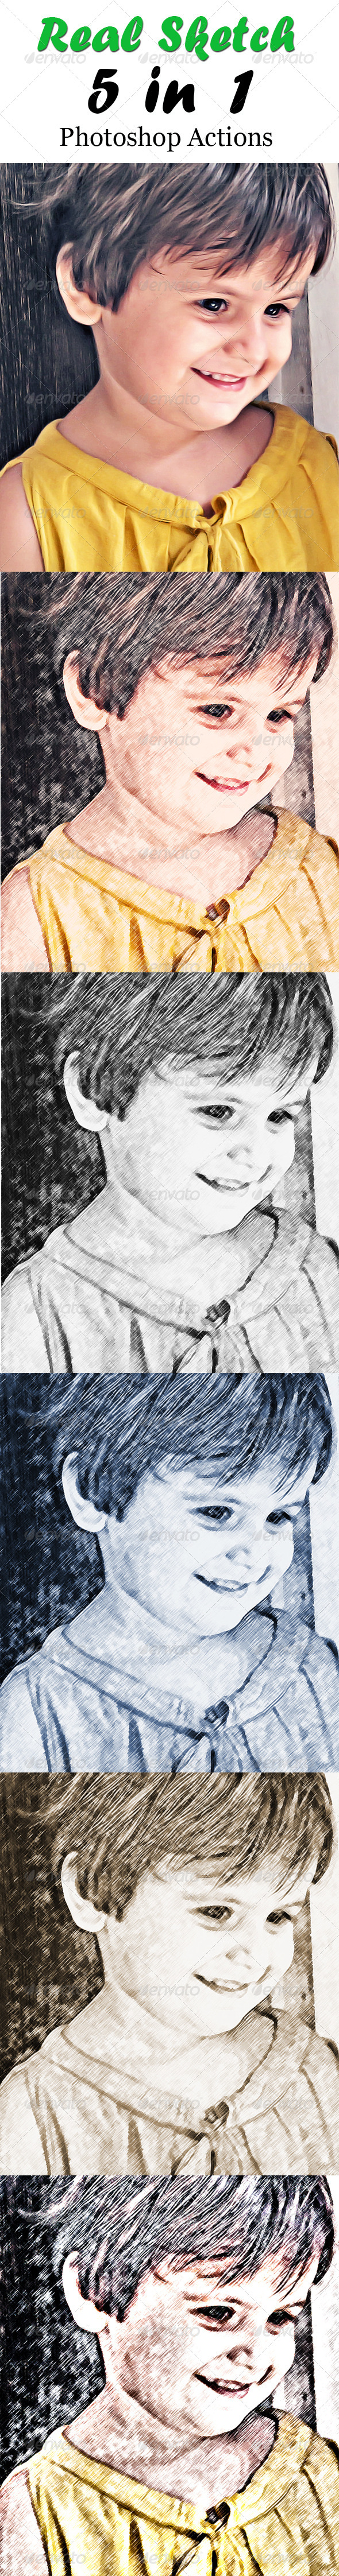 Real Sketch Photoshop Actions  #GraphicRiver         This is a set of 5 sketch actions. You can convert any image into a sketch with just a single click.   HDR Sketch Action Color Sketch Action Black and White Sketch Action New Age Sketch Action Sepia Sketch Action     Created: 7July13 Add-onFilesIncluded: JPGImage #PhotoshopATN MinimumAdobeCSVersion: CS6 WorksWith: JPG Tags: blackandwhitesketchactions #drawingactions #hdrsketchaction #paintingactions #photoshopsketchactions…